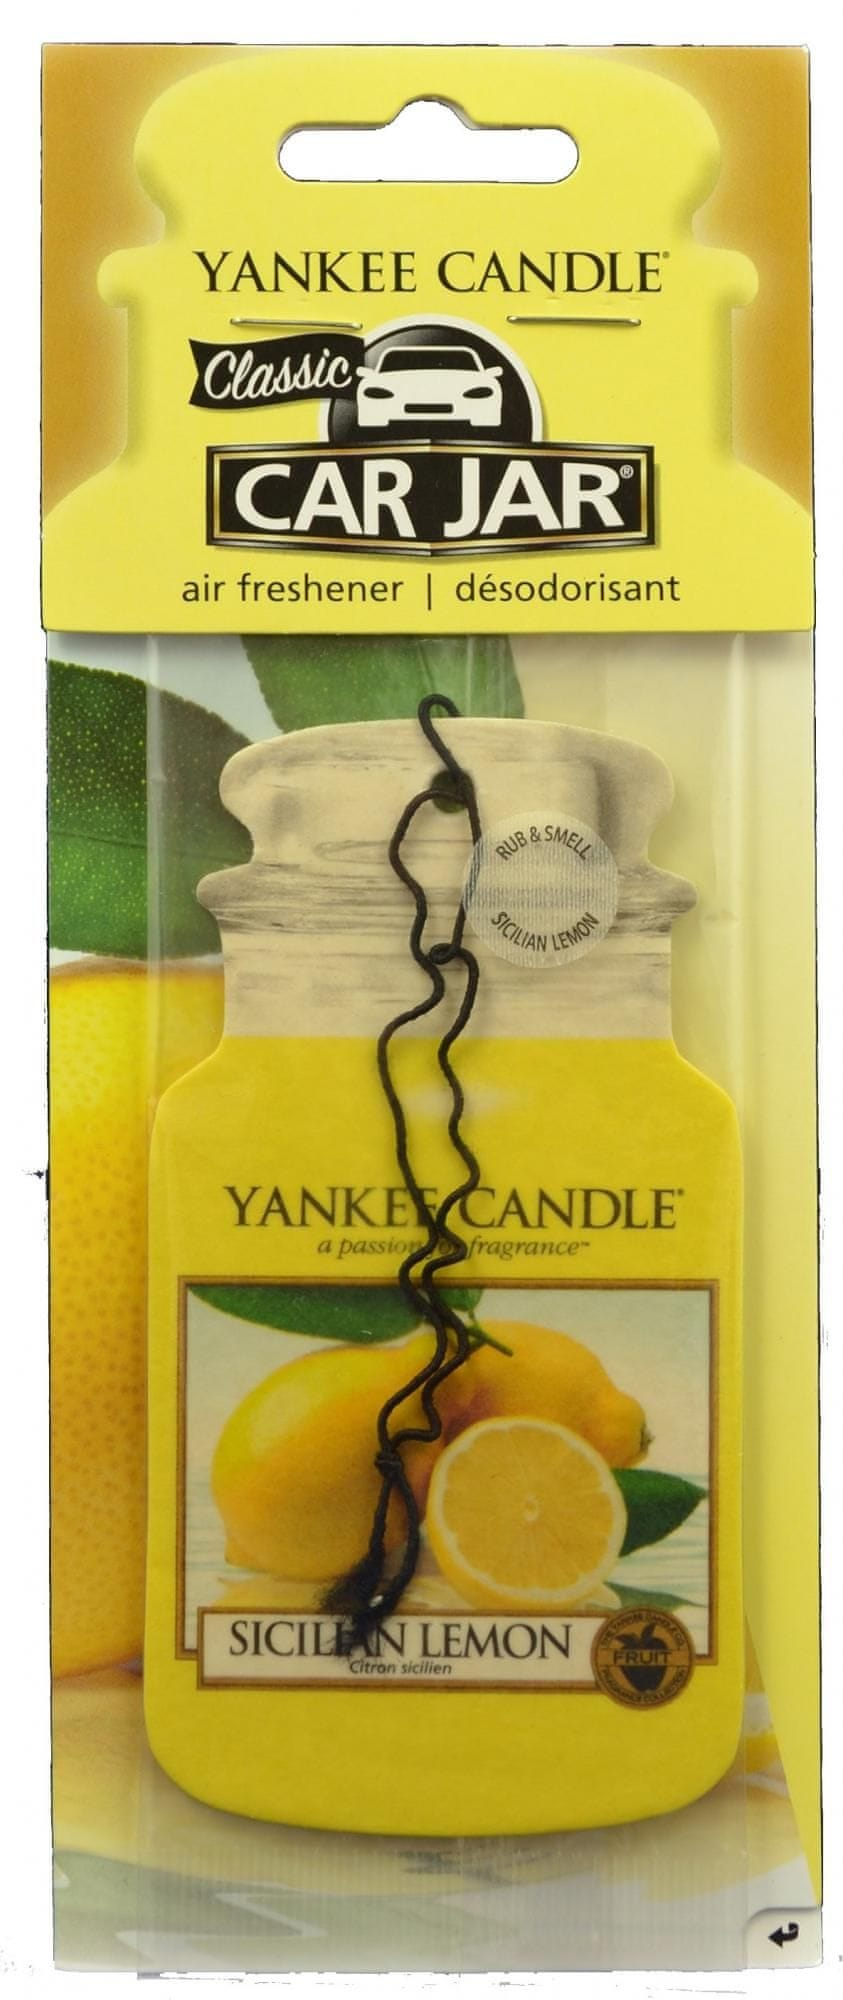 Yankee Candle Car Jar Sicilian Lemon papírová visačka do auta 1 ks